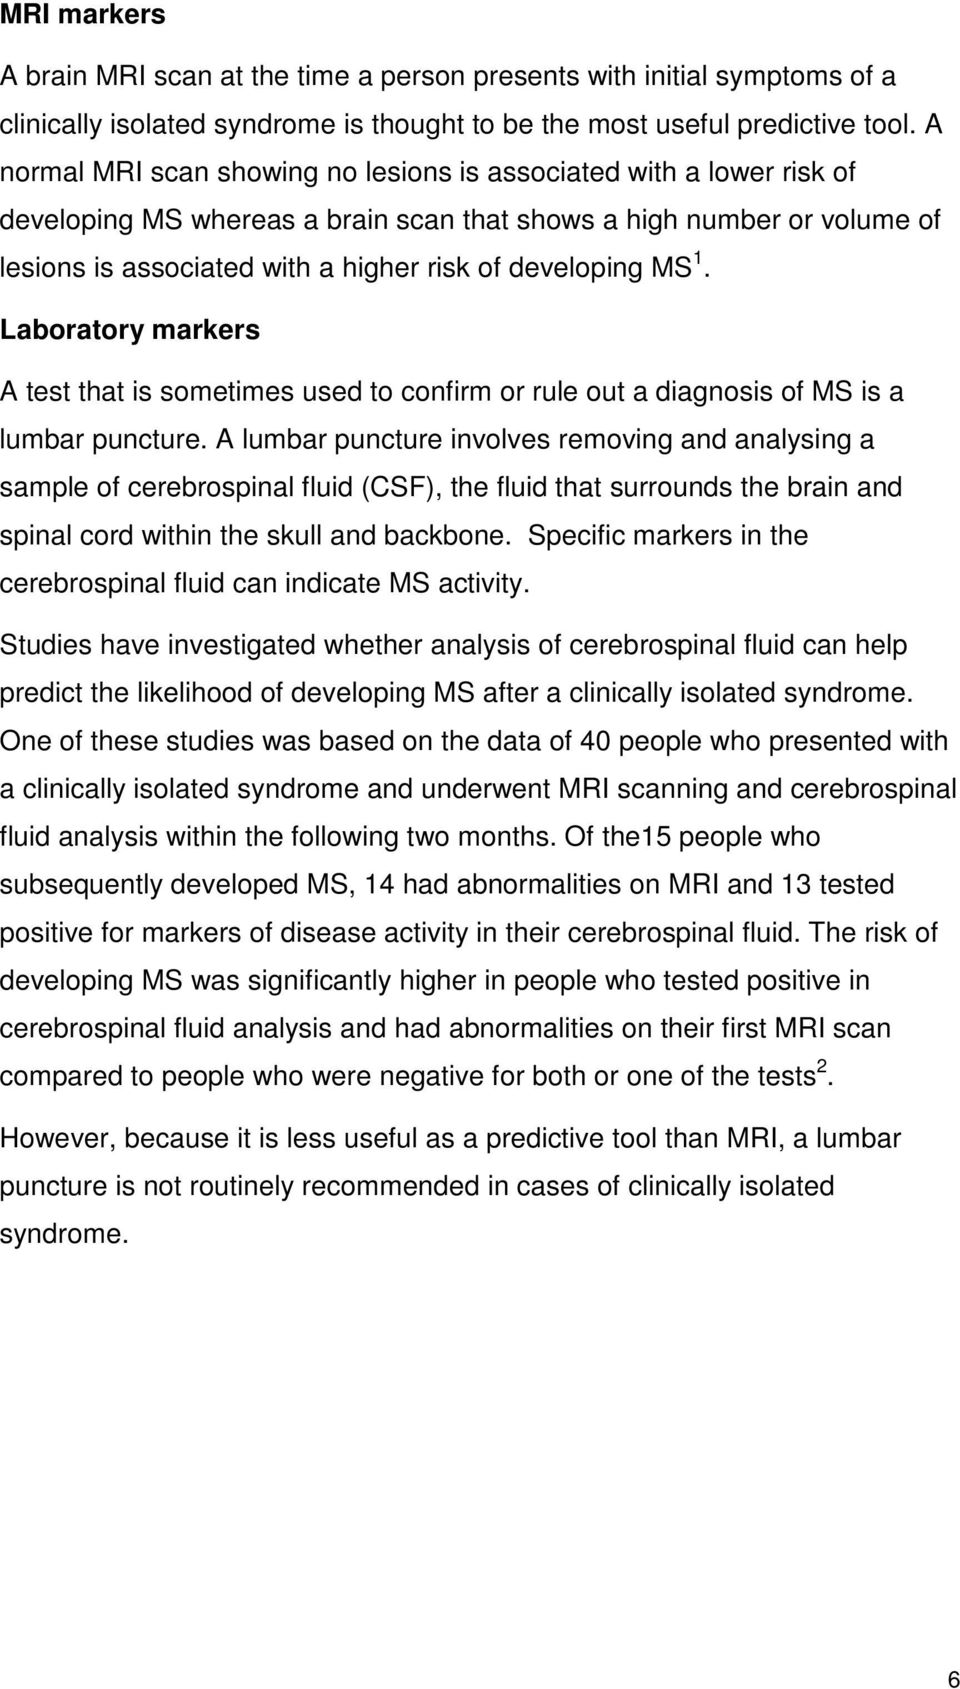 MS 1. Laboratory markers A test that is sometimes used to confirm or rule out a diagnosis of MS is a lumbar puncture.